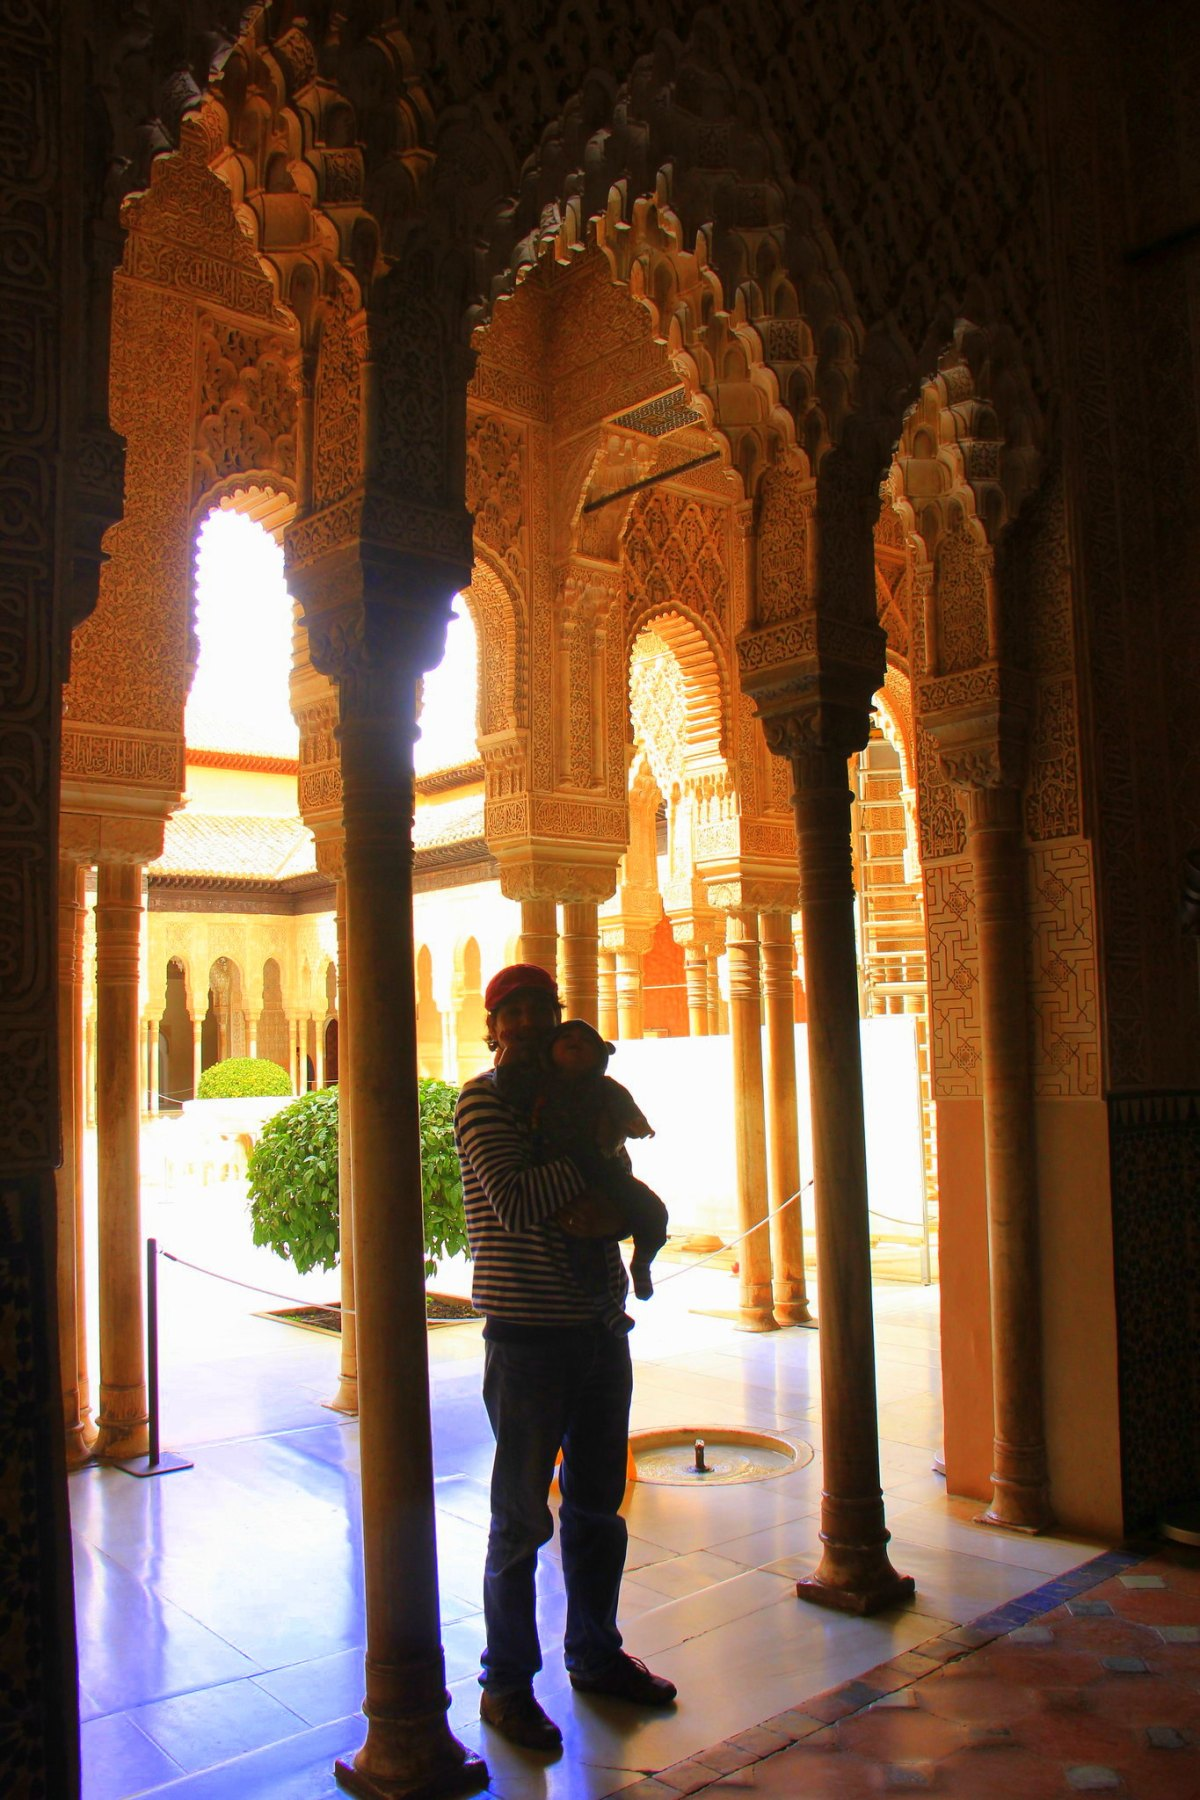 The awe-inspiring Alhambra is the highlight of Granada